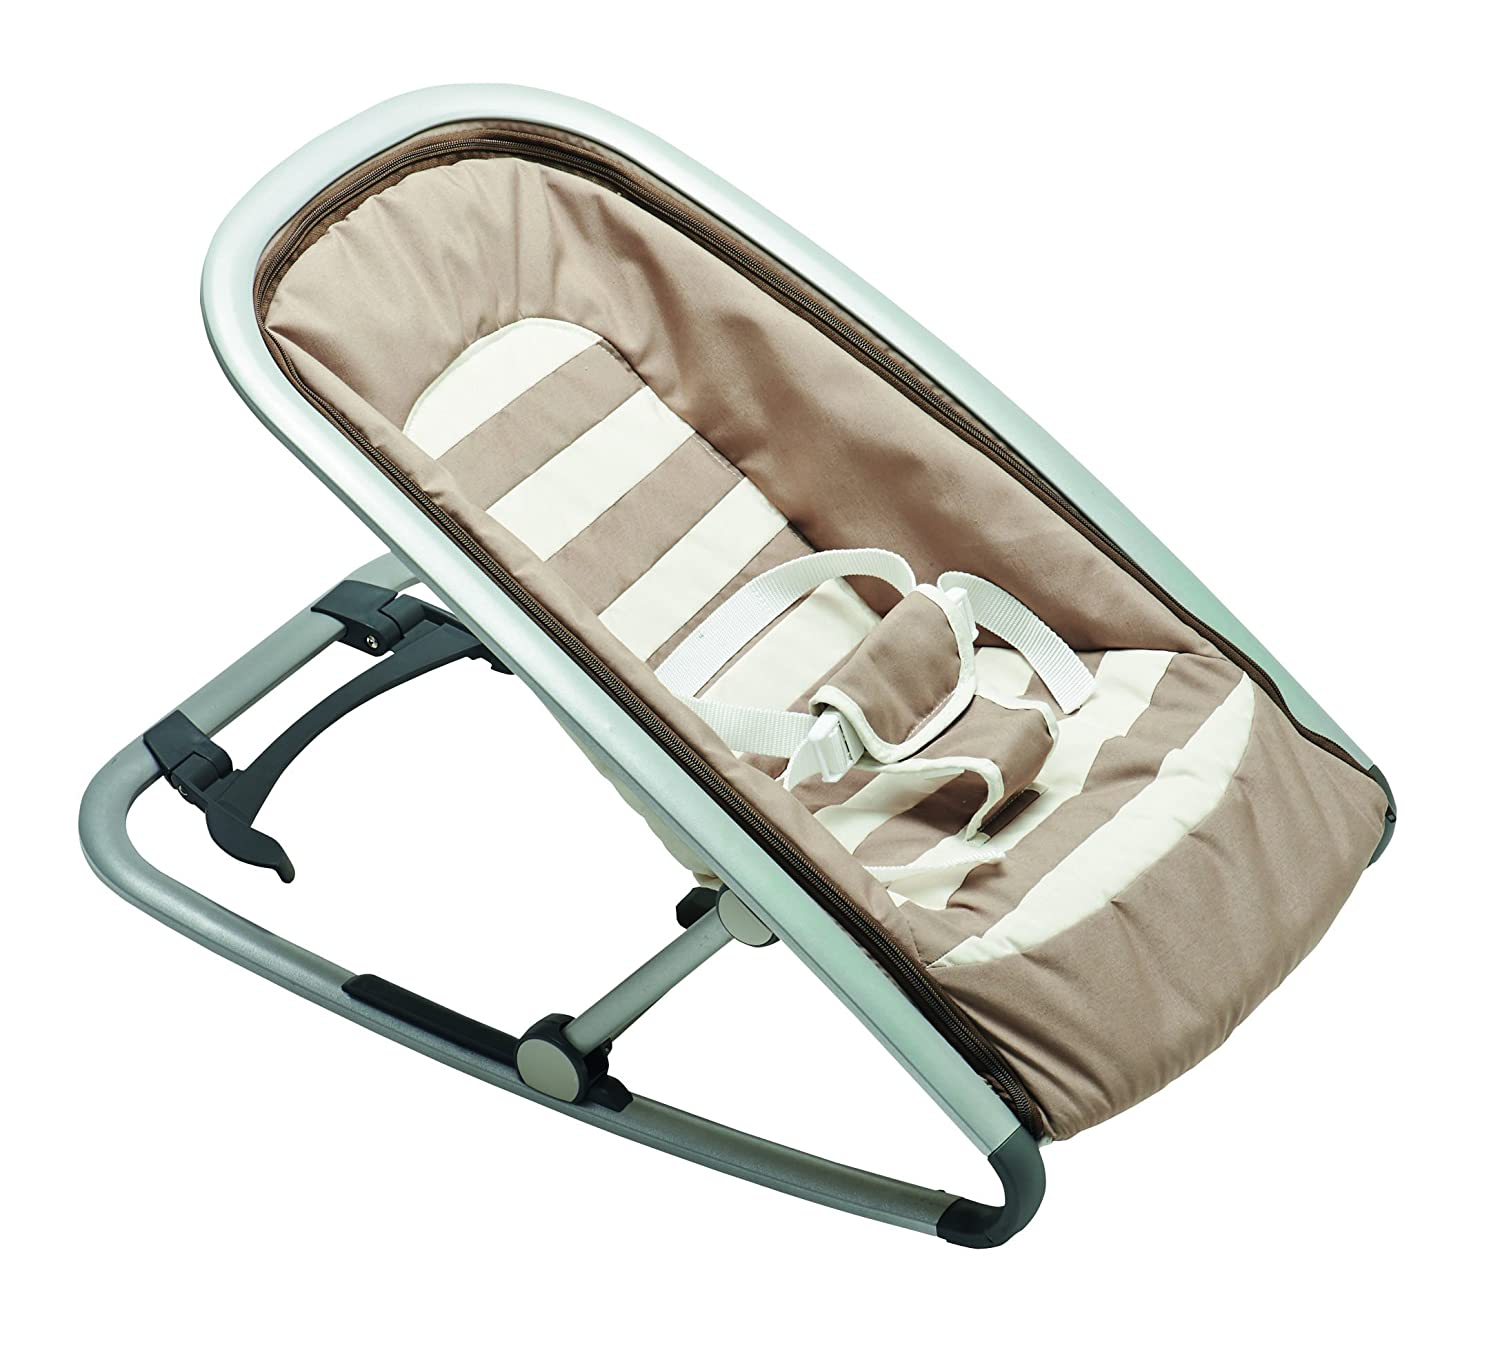 Geuther - Baby-Wippe Shirley, beige/weiß Geuther Kindermöbel 4707 150